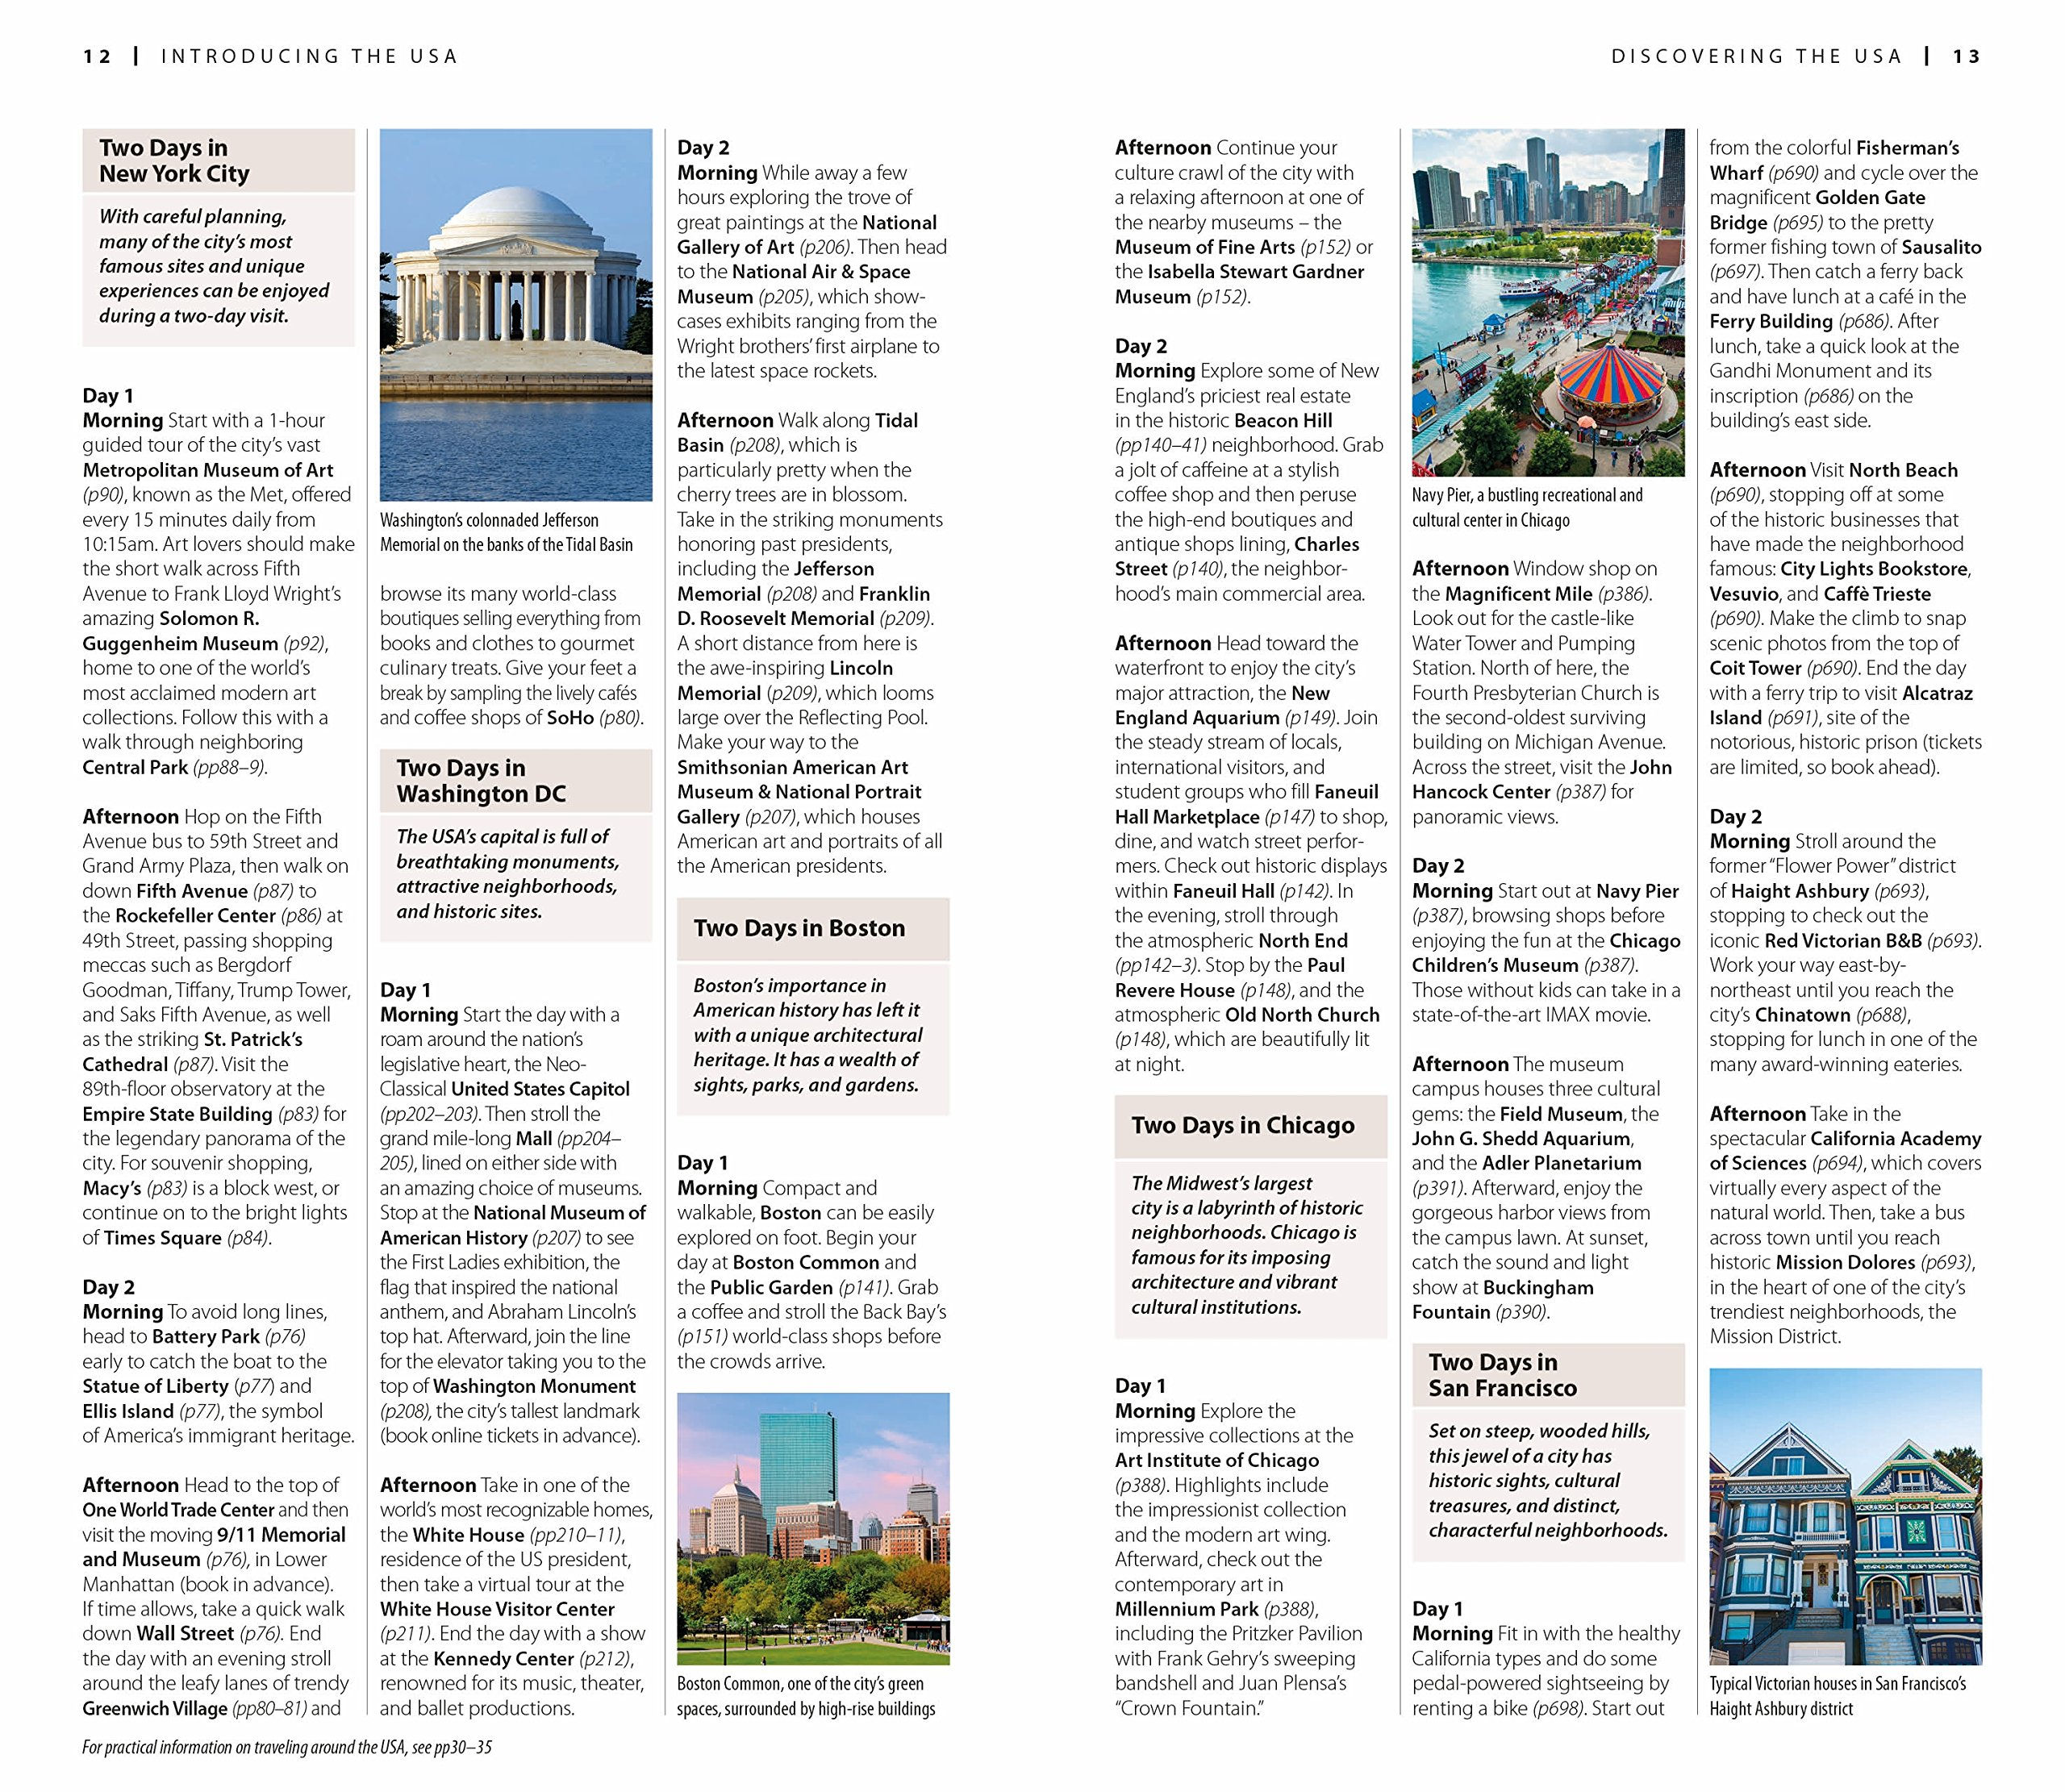 Buy DK Eyewitness Travel Guide USA Book Online at Low Prices